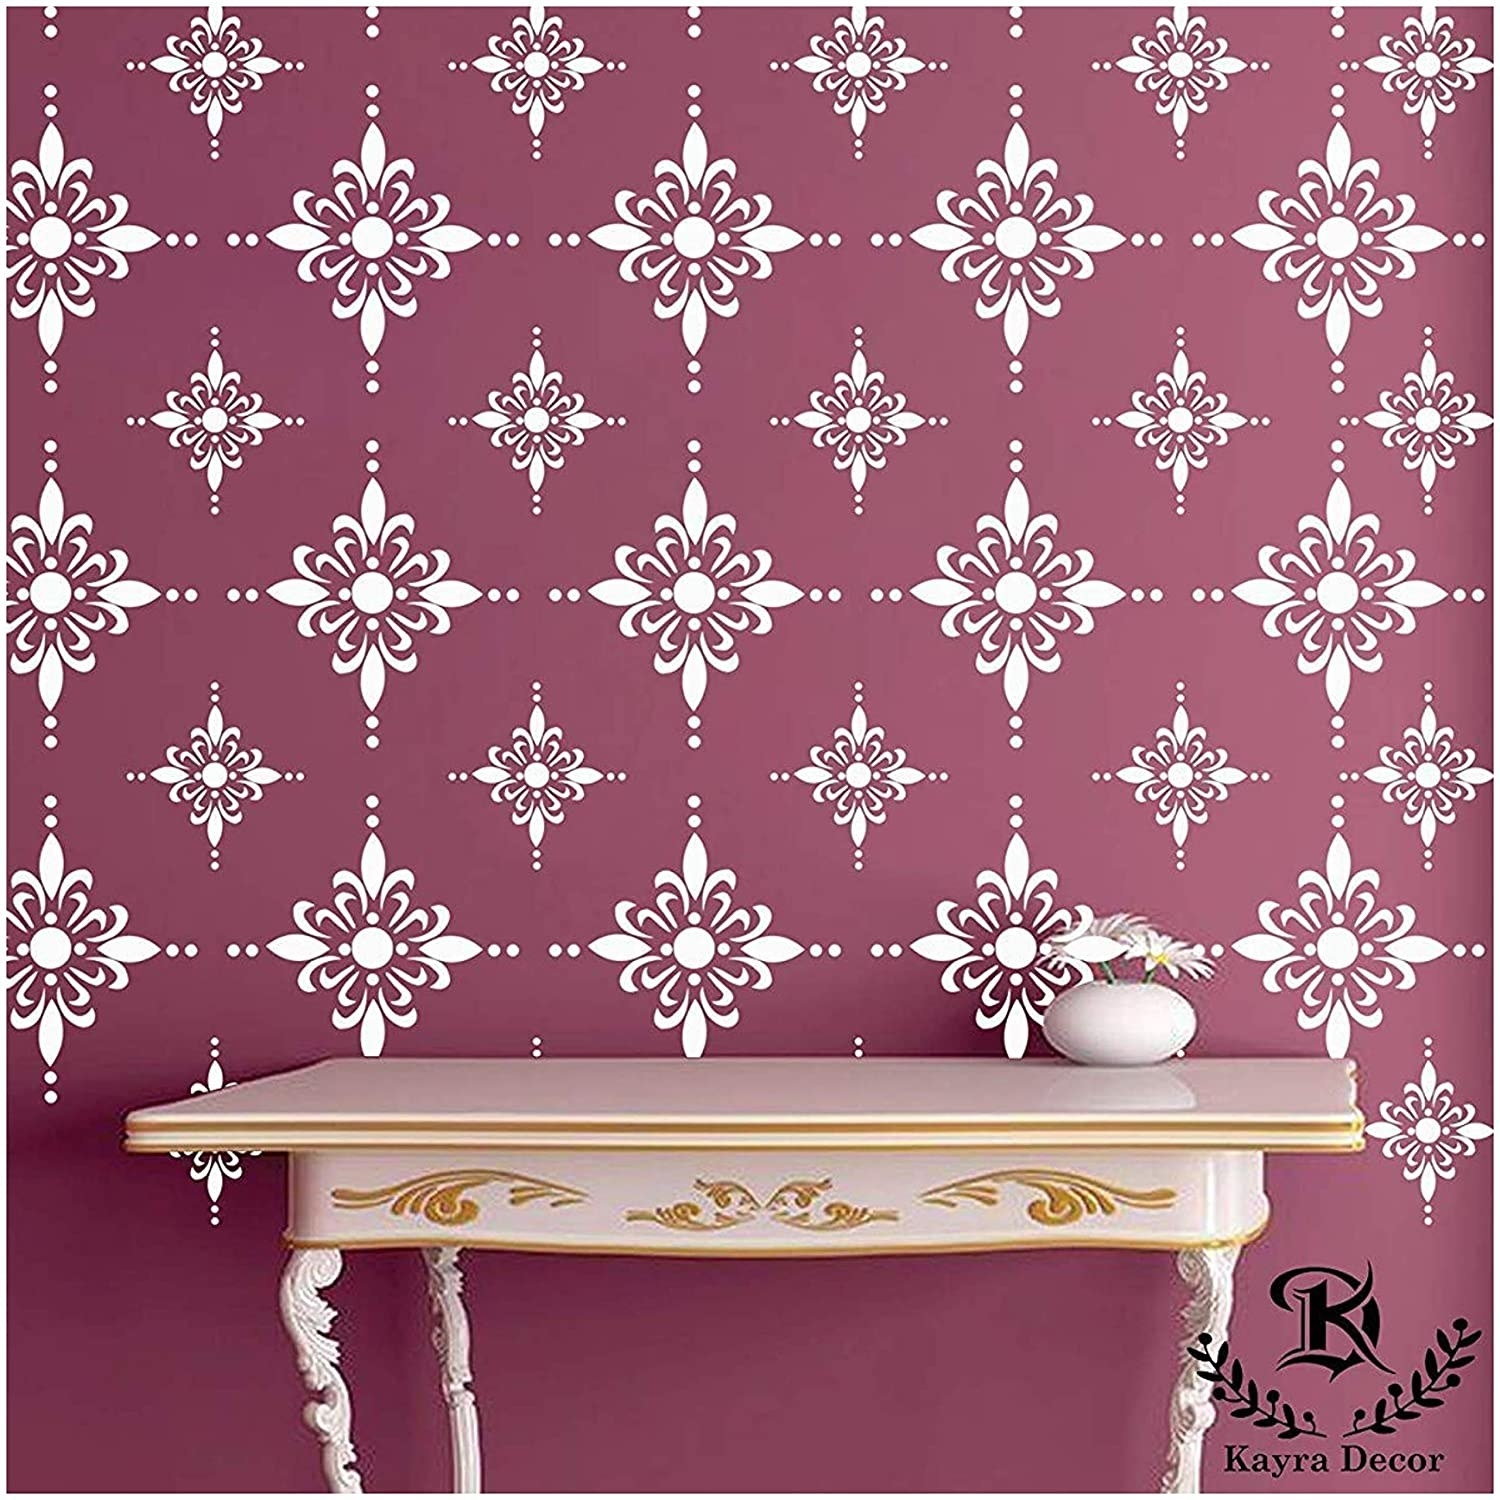 The stencil has a floral design. It's used to create a white floral pattern on a dusty rose coloured wall.